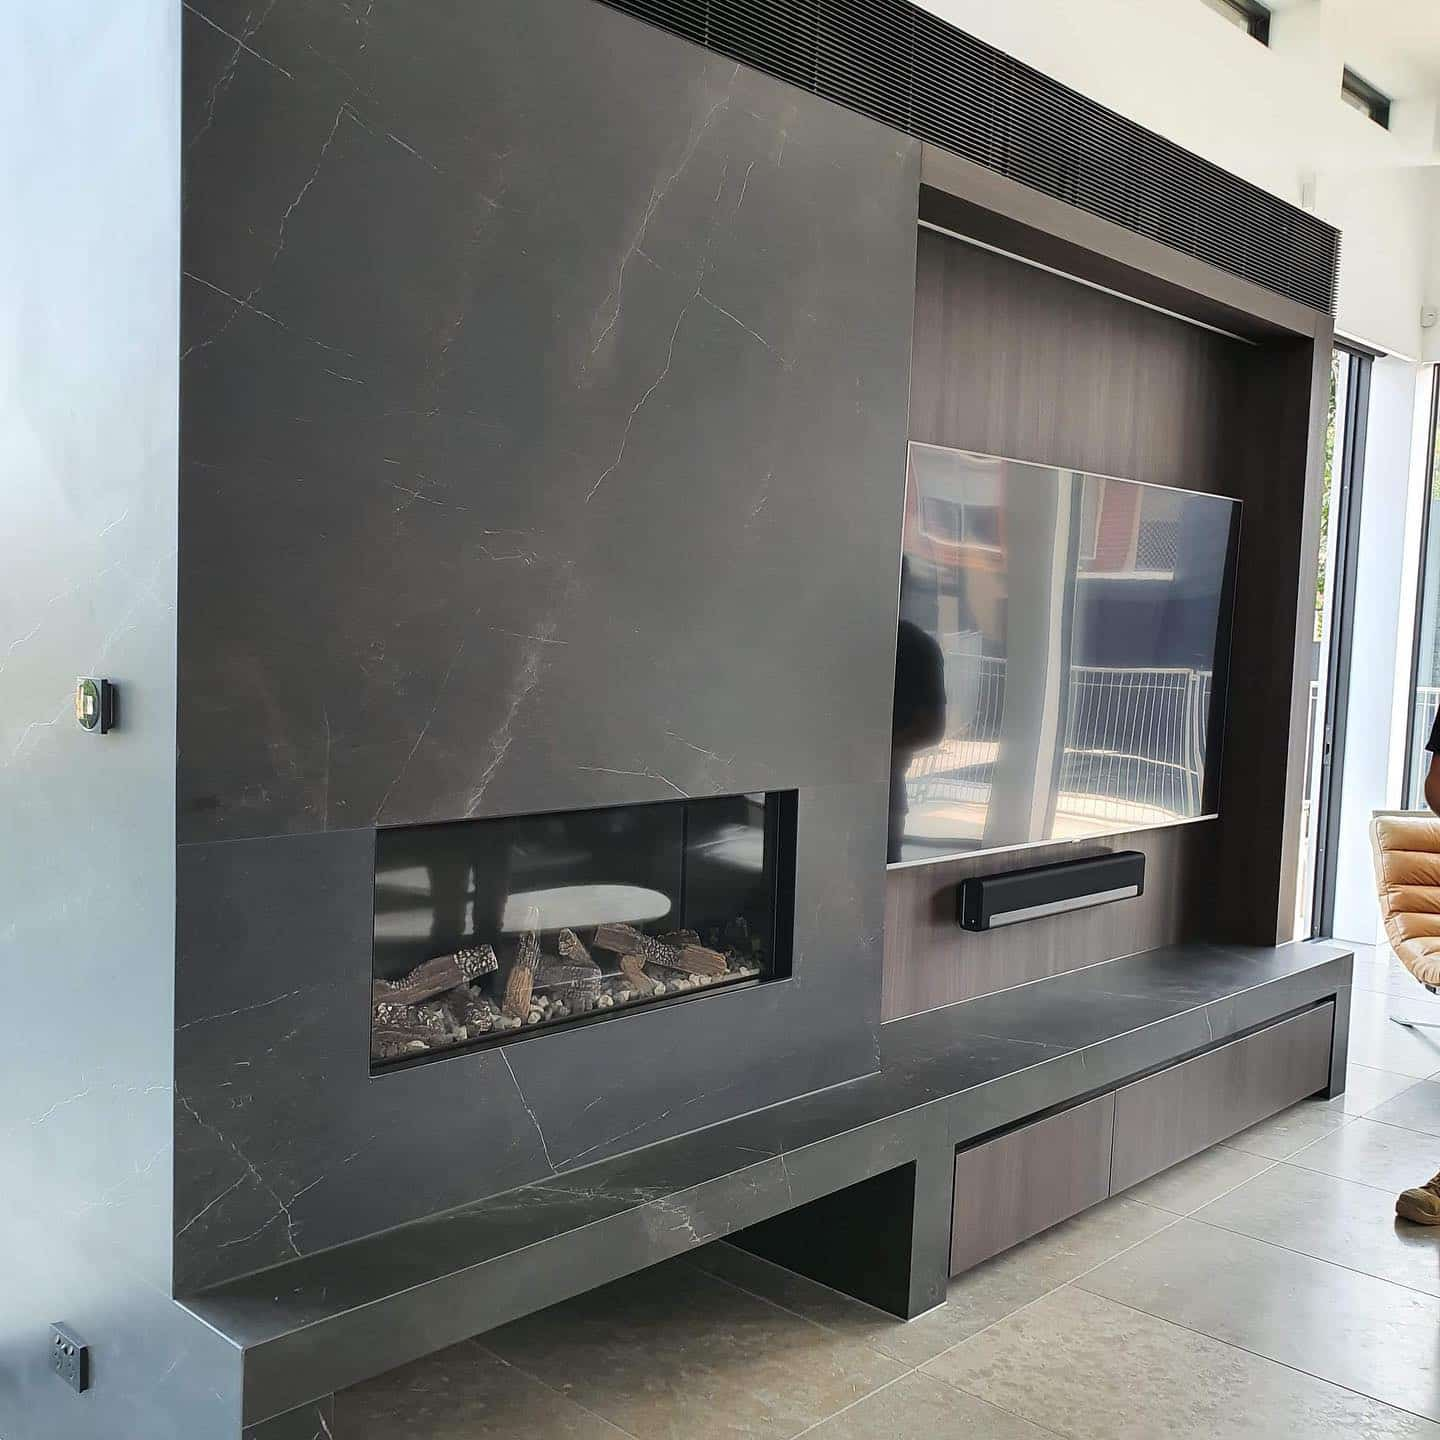 Gas Fireplace Next to TV Unit - Luxury Living Room Design